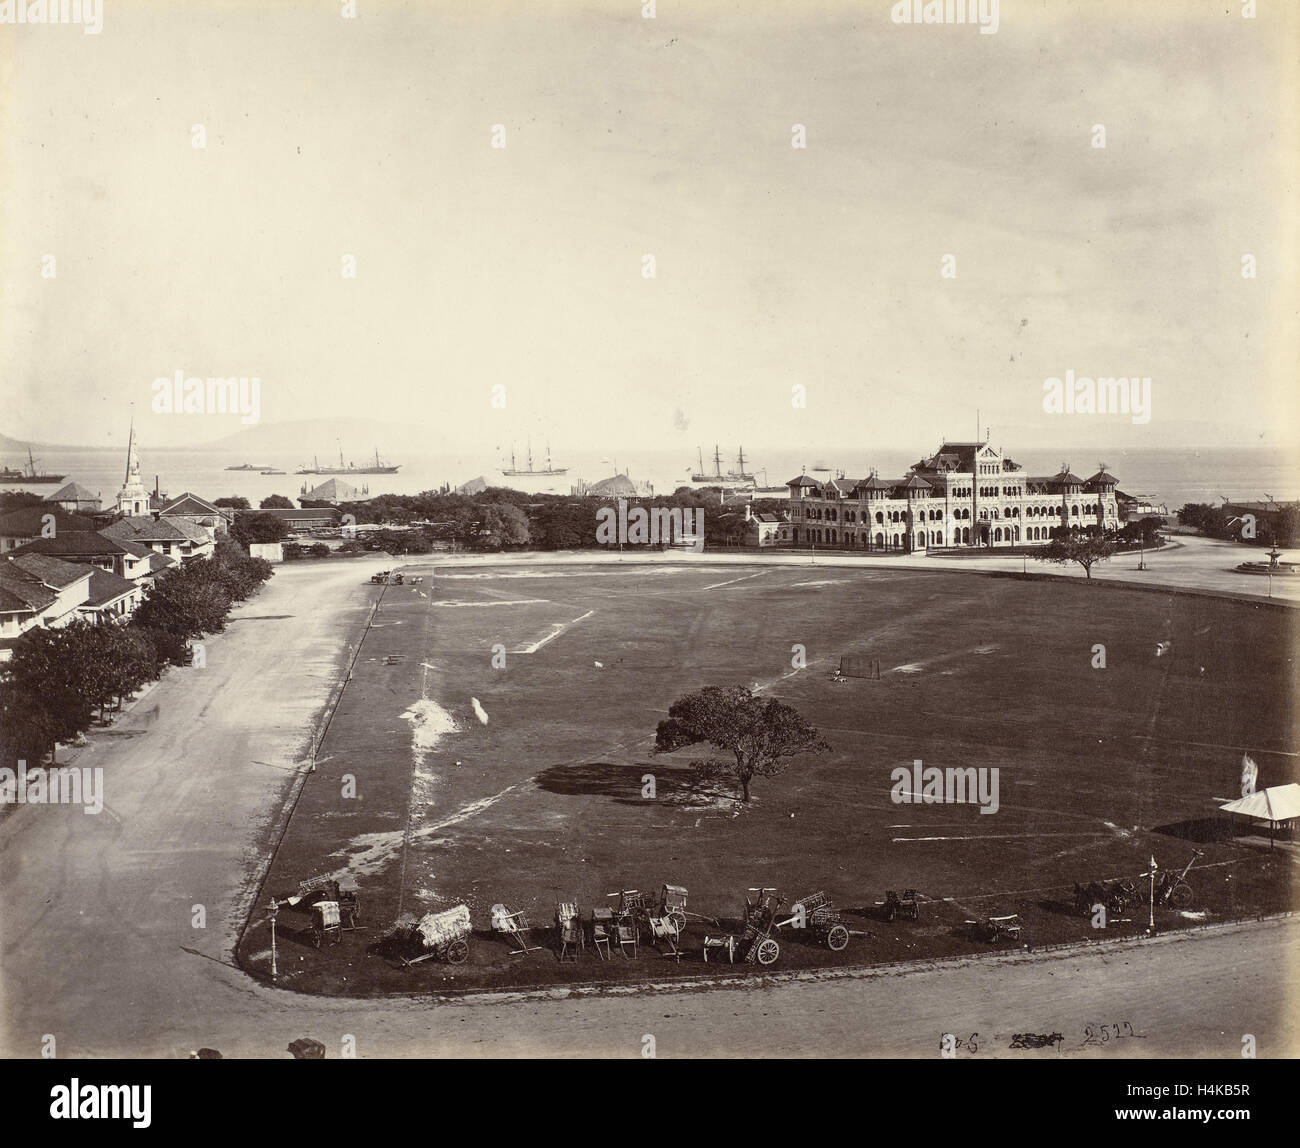 Sea from Watson's Hotel in Bombay, India, Samuel Bourne, 1862 - 1874 - Stock Image